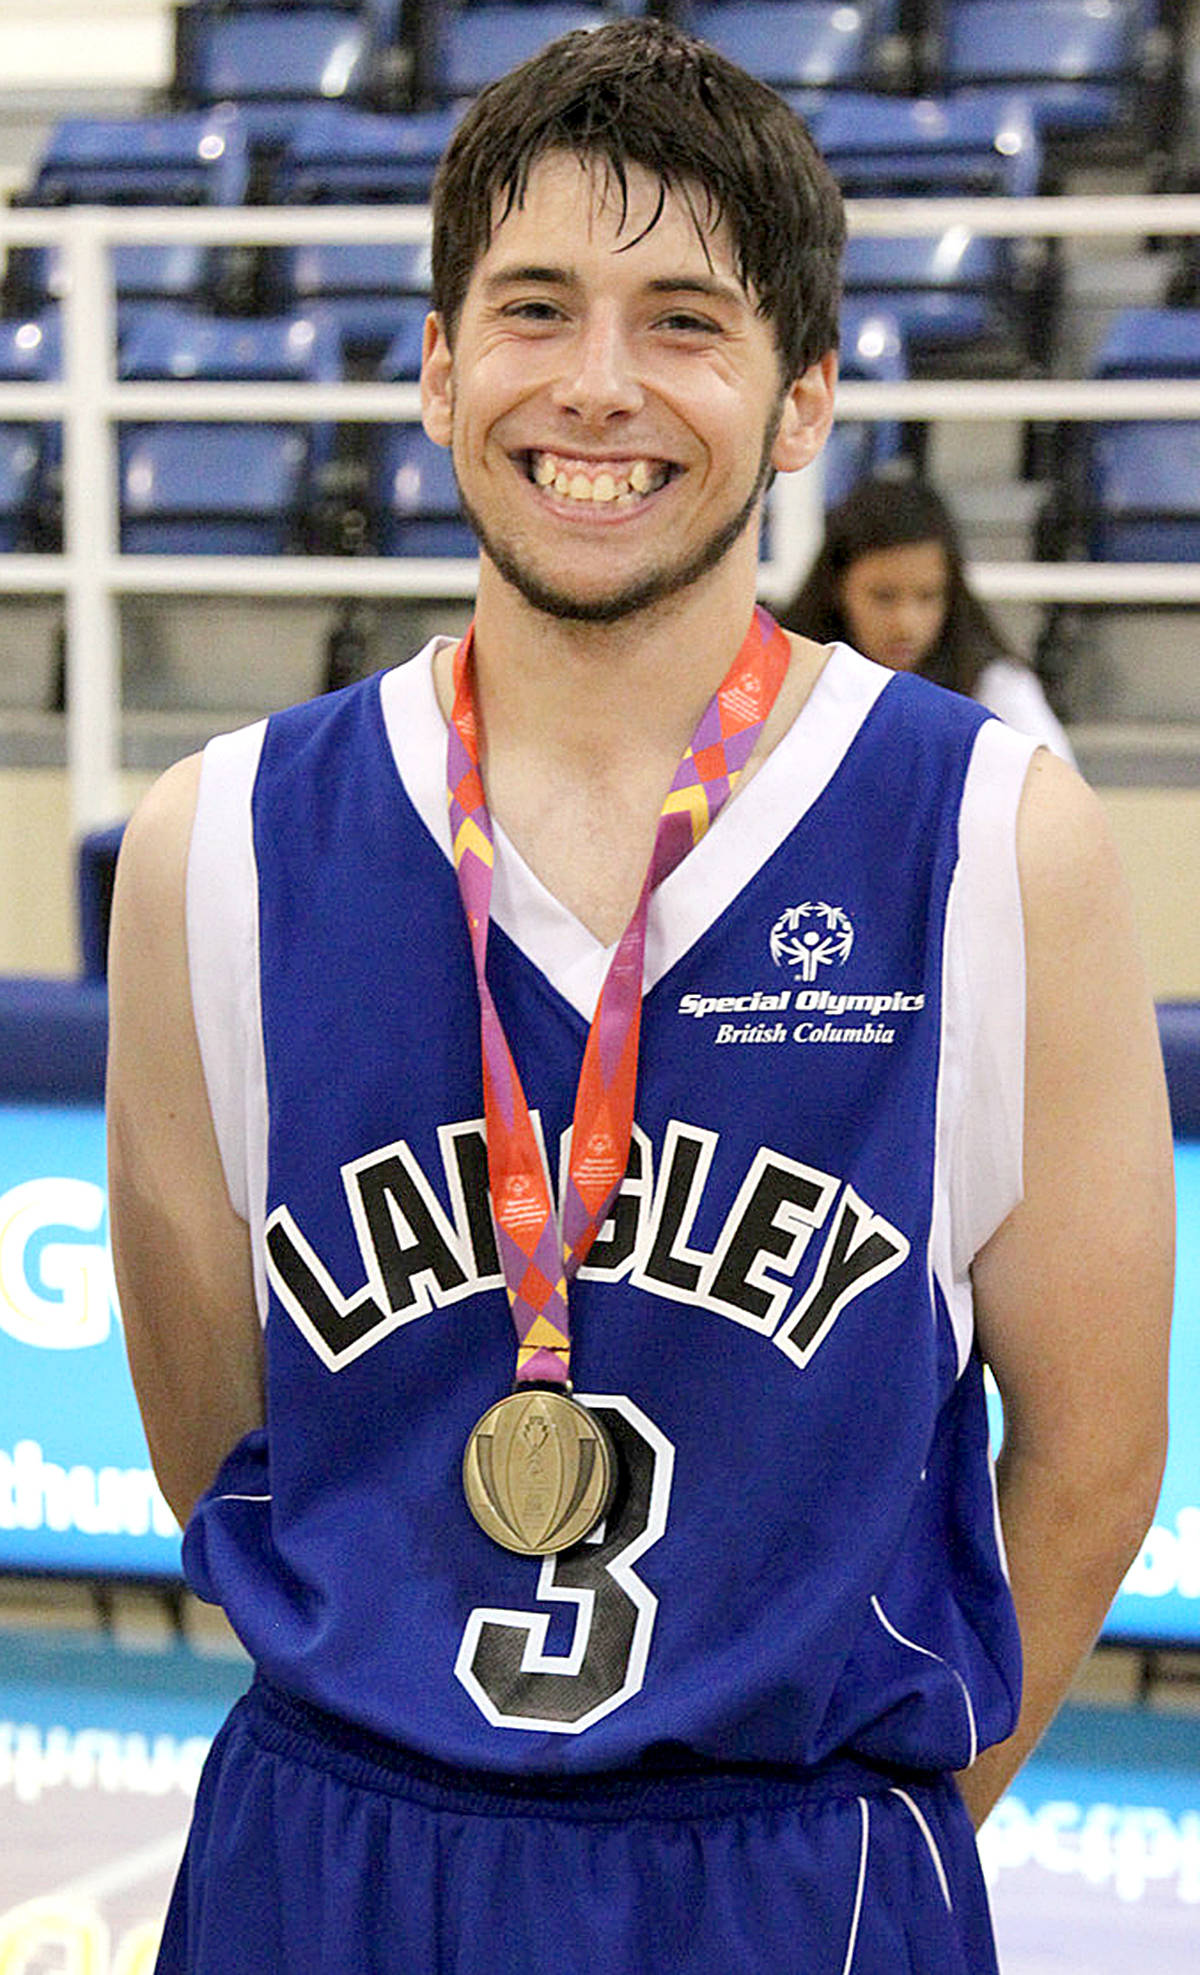 Special Olympics BC – Langley athlete Matthew Williams receives his medal at the 2014 Special Olympics Canada Summer Games in Vancouver. (Special Olympics British Columbia photo)